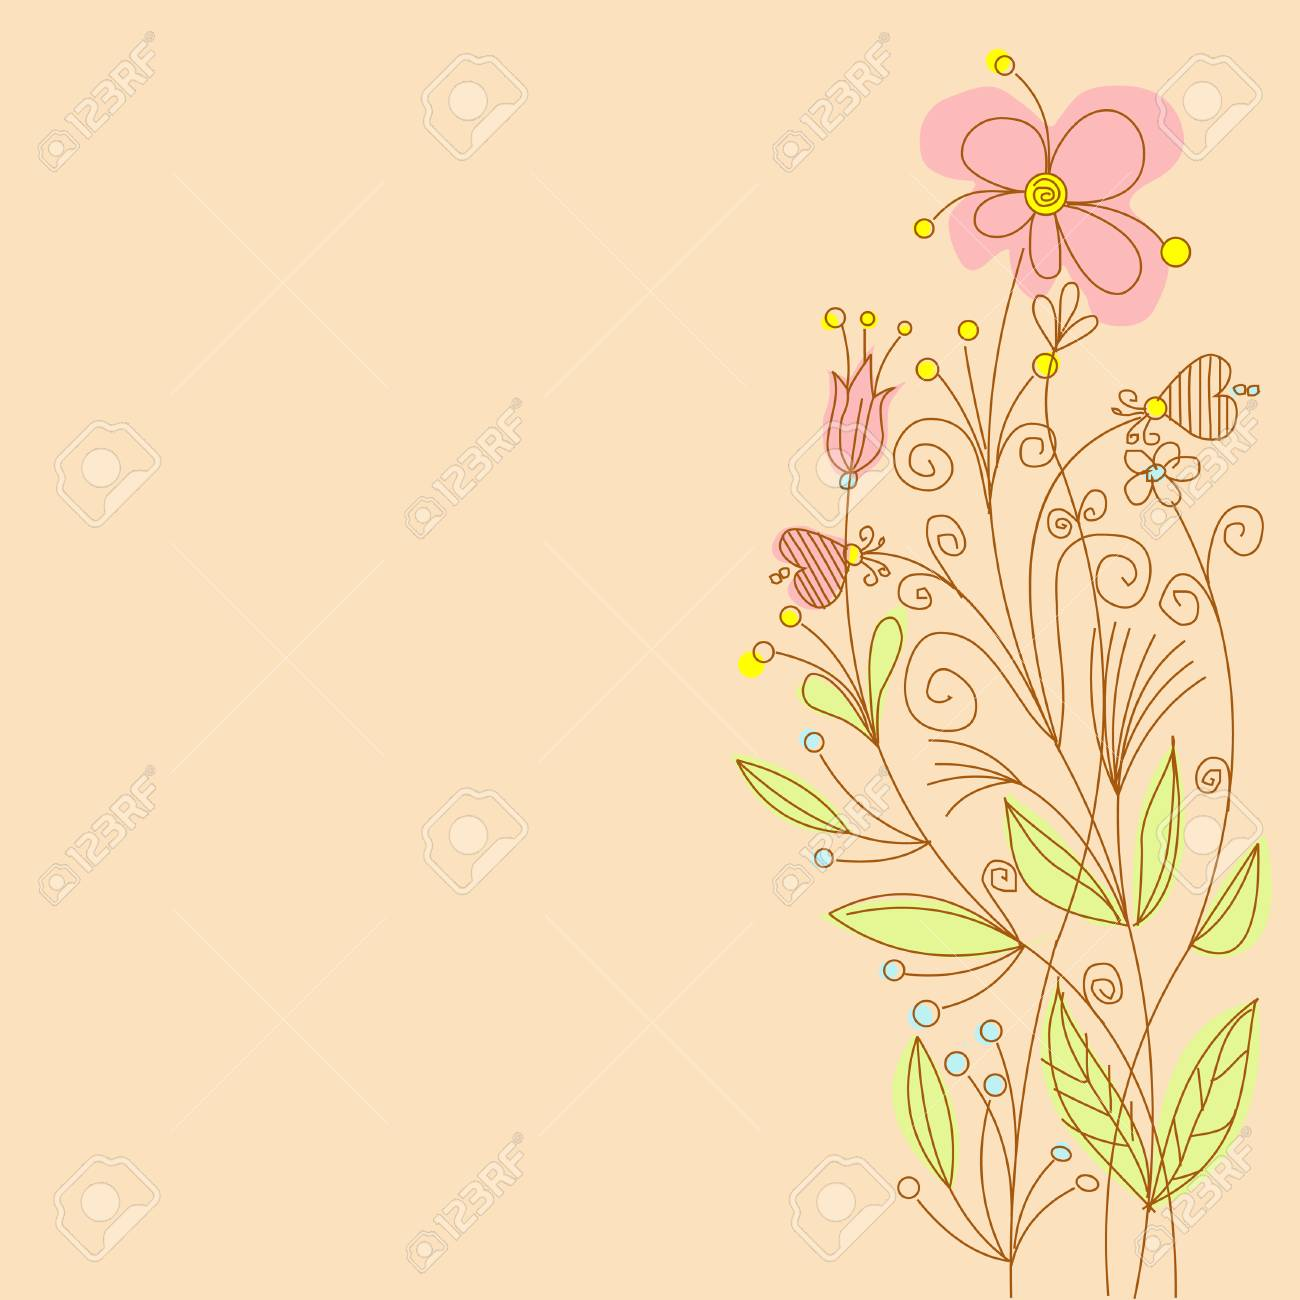 Greeting card with flowers and place for your text Stock Vector - 6870369